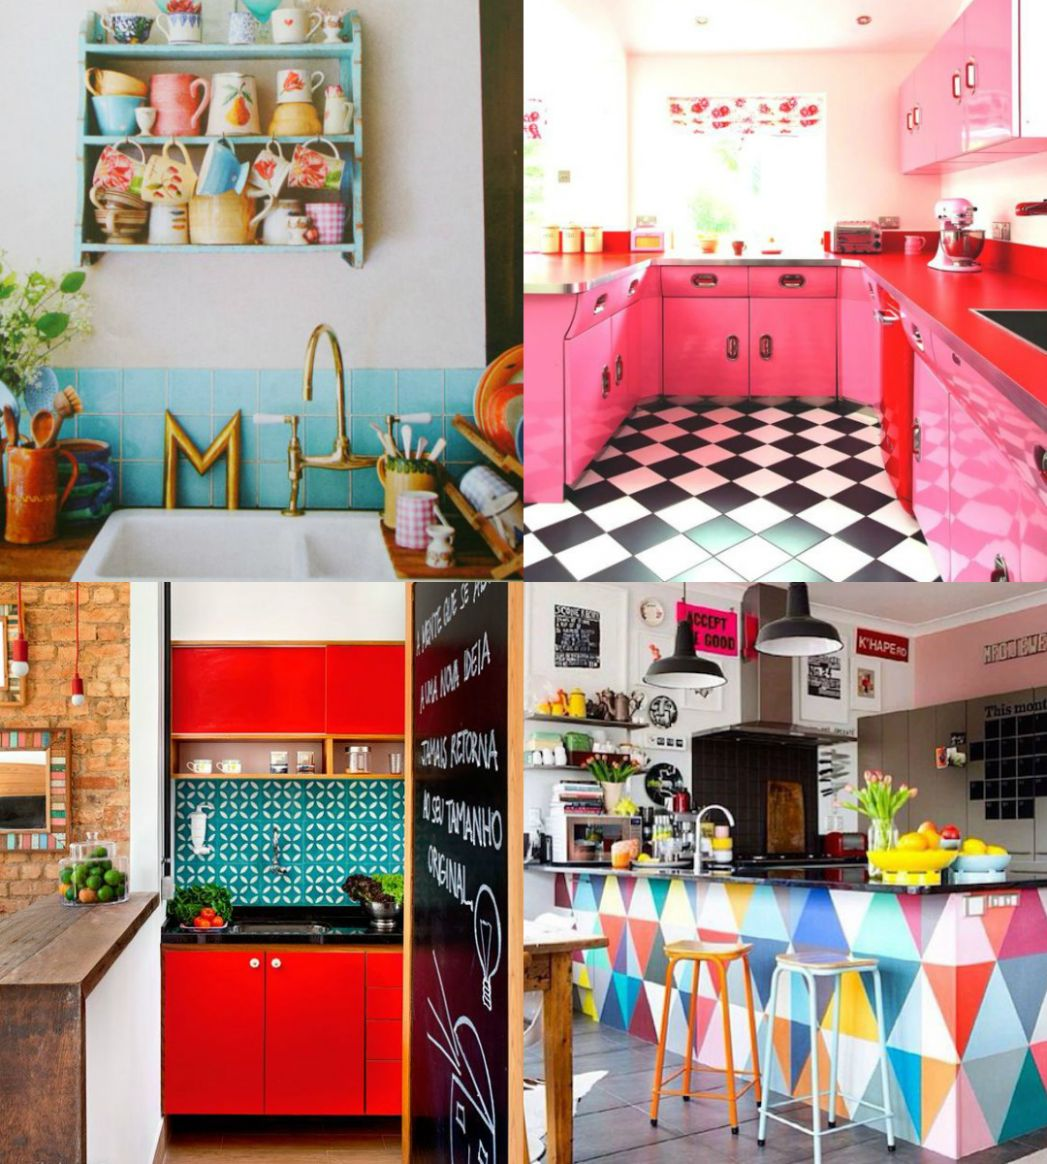 Ever So Juliet | Edinburgh lifestyle blog: COLOURFUL KITCHEN IDEAS - kitchen ideas quirky